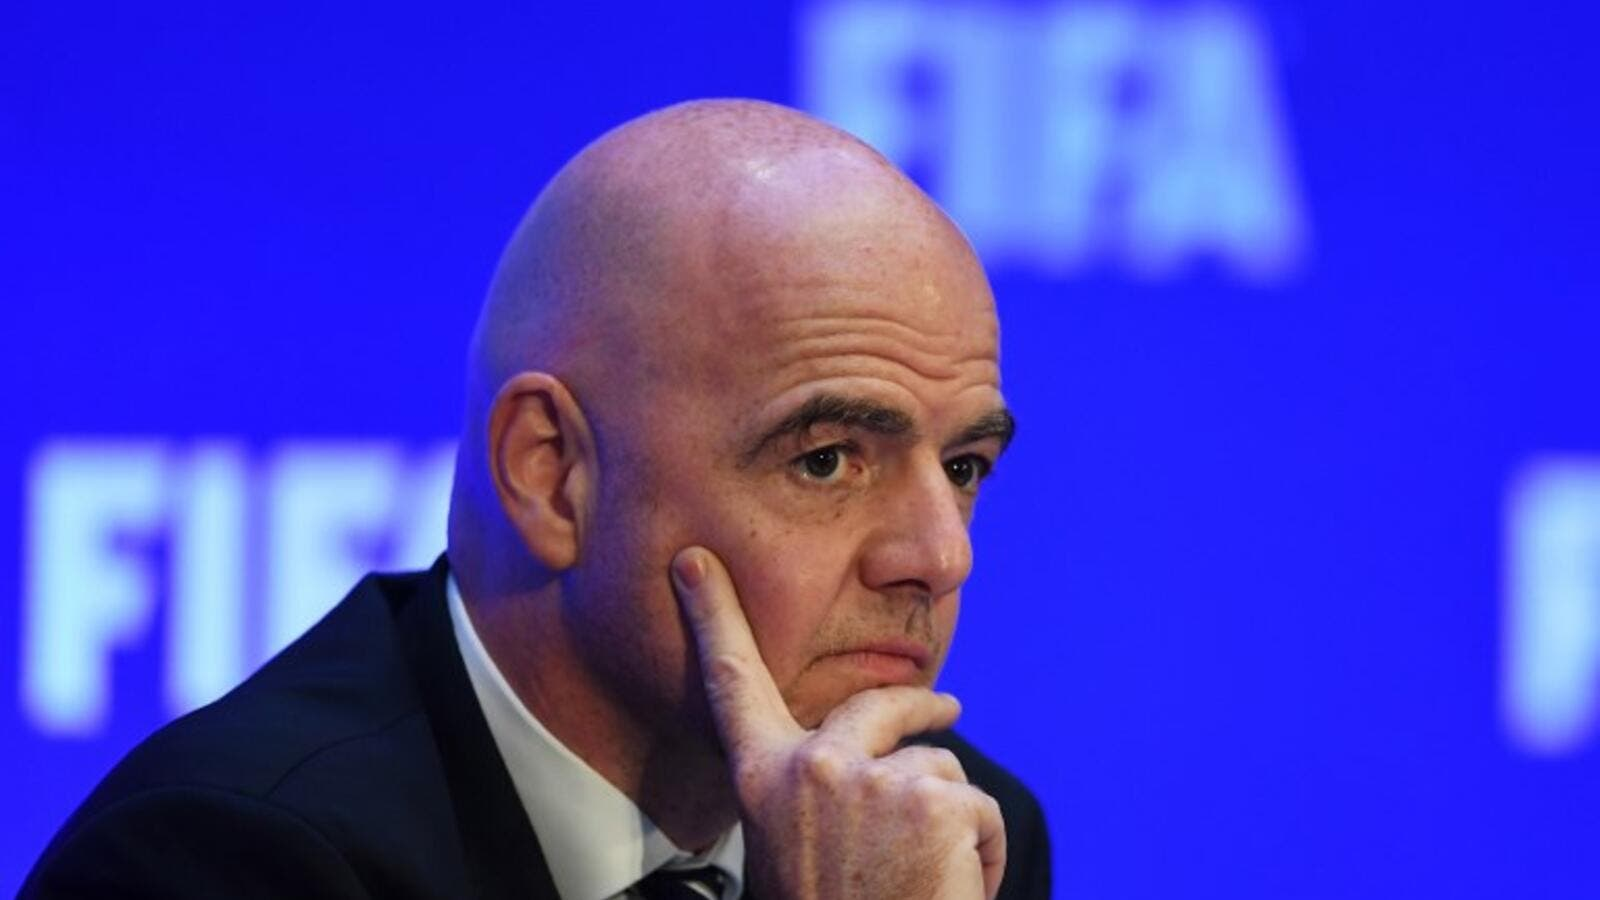 The prospect of the 2022 competition being increased to 48 teams has taken a hit after FIFA's president said talks have been shelved for now